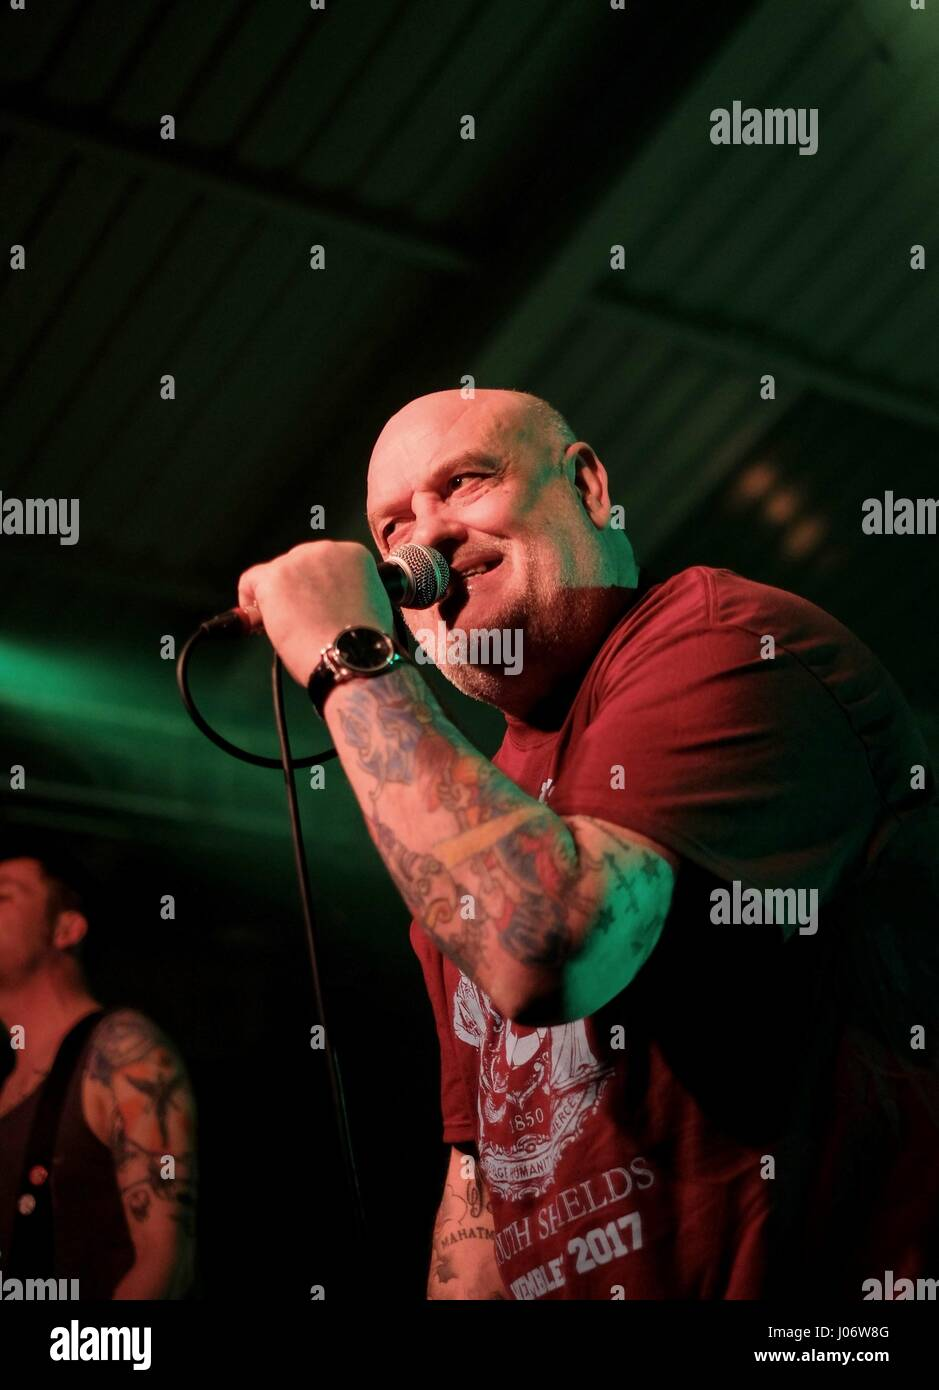 Thomas Mensi Mensforth performing with British punk band the Angelic Upstarts  at Pinkfest 2017, Engine Rooms Southampton - Stock Image